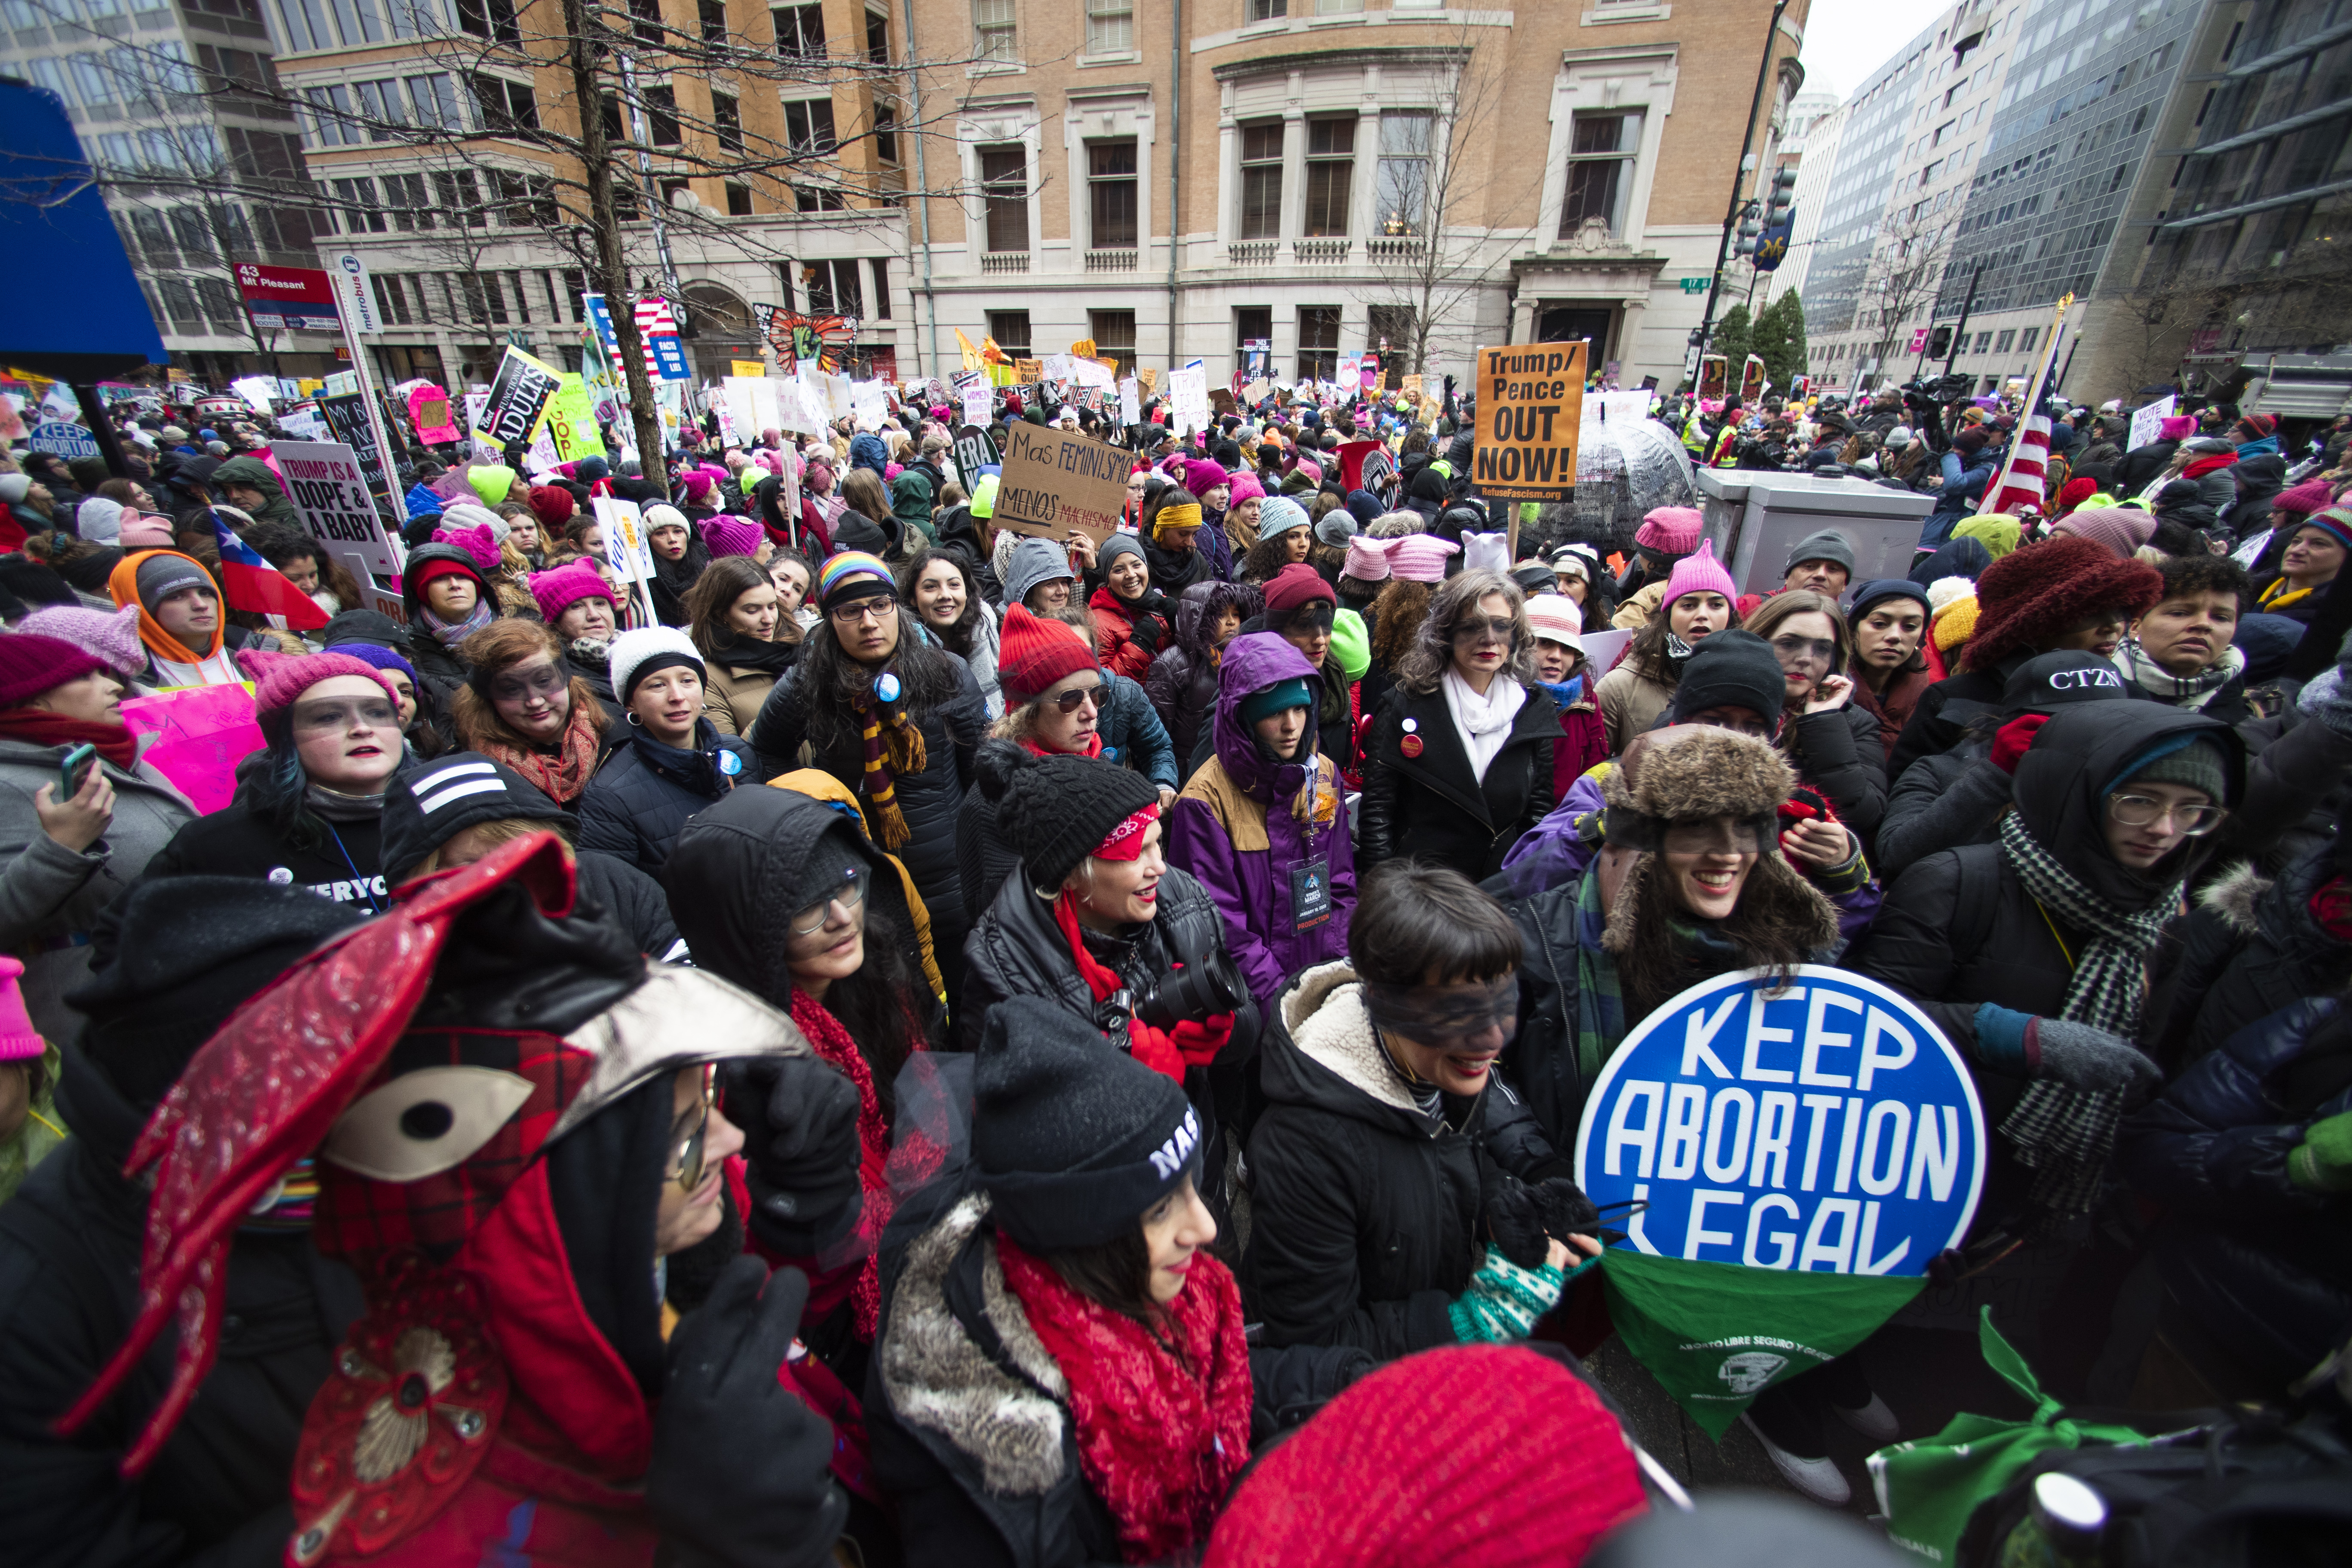 Participants of the Women's March march around the White House three years after the first march in 2017, the day after President Donald Trump was sworn into office, in Washington D.C., on Jan. 18, 2020.